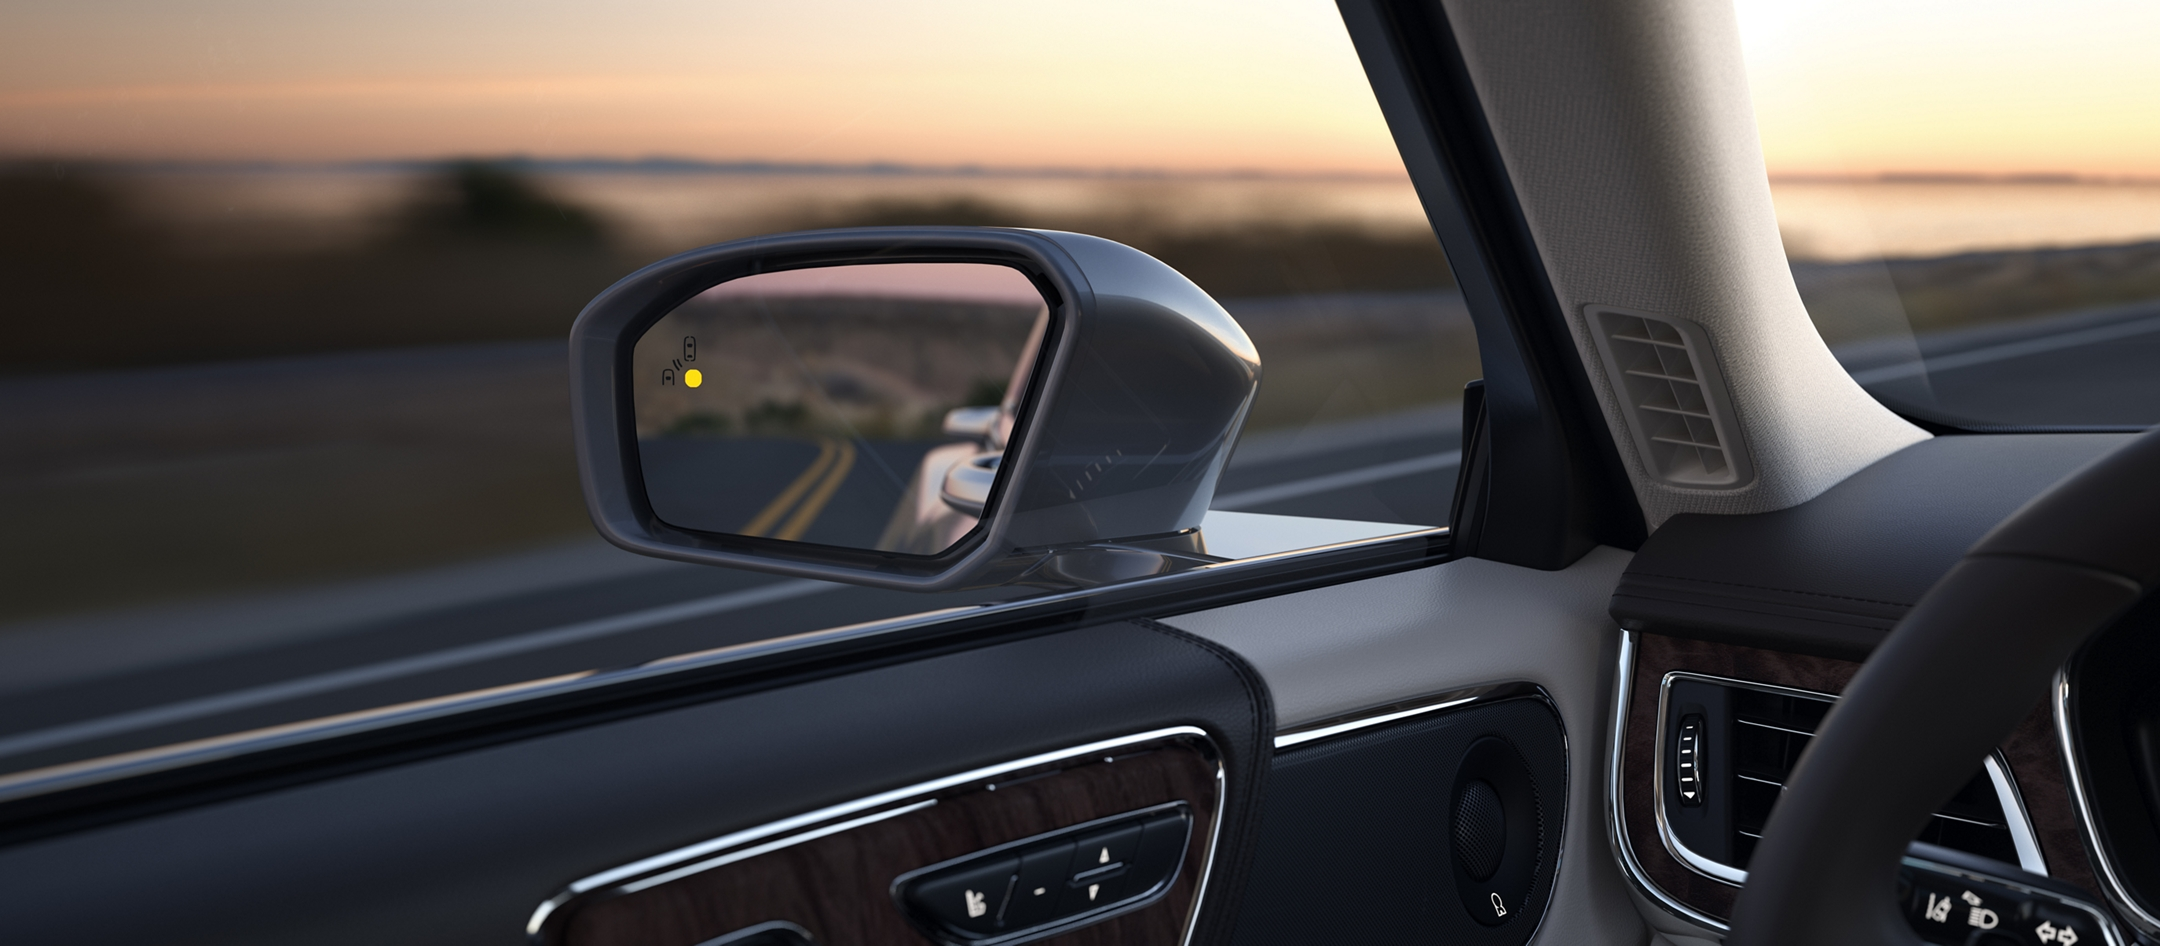 The blind spot detection indicator in the drivers side view mirror is shown indicating that a vehicle is in the blind spot